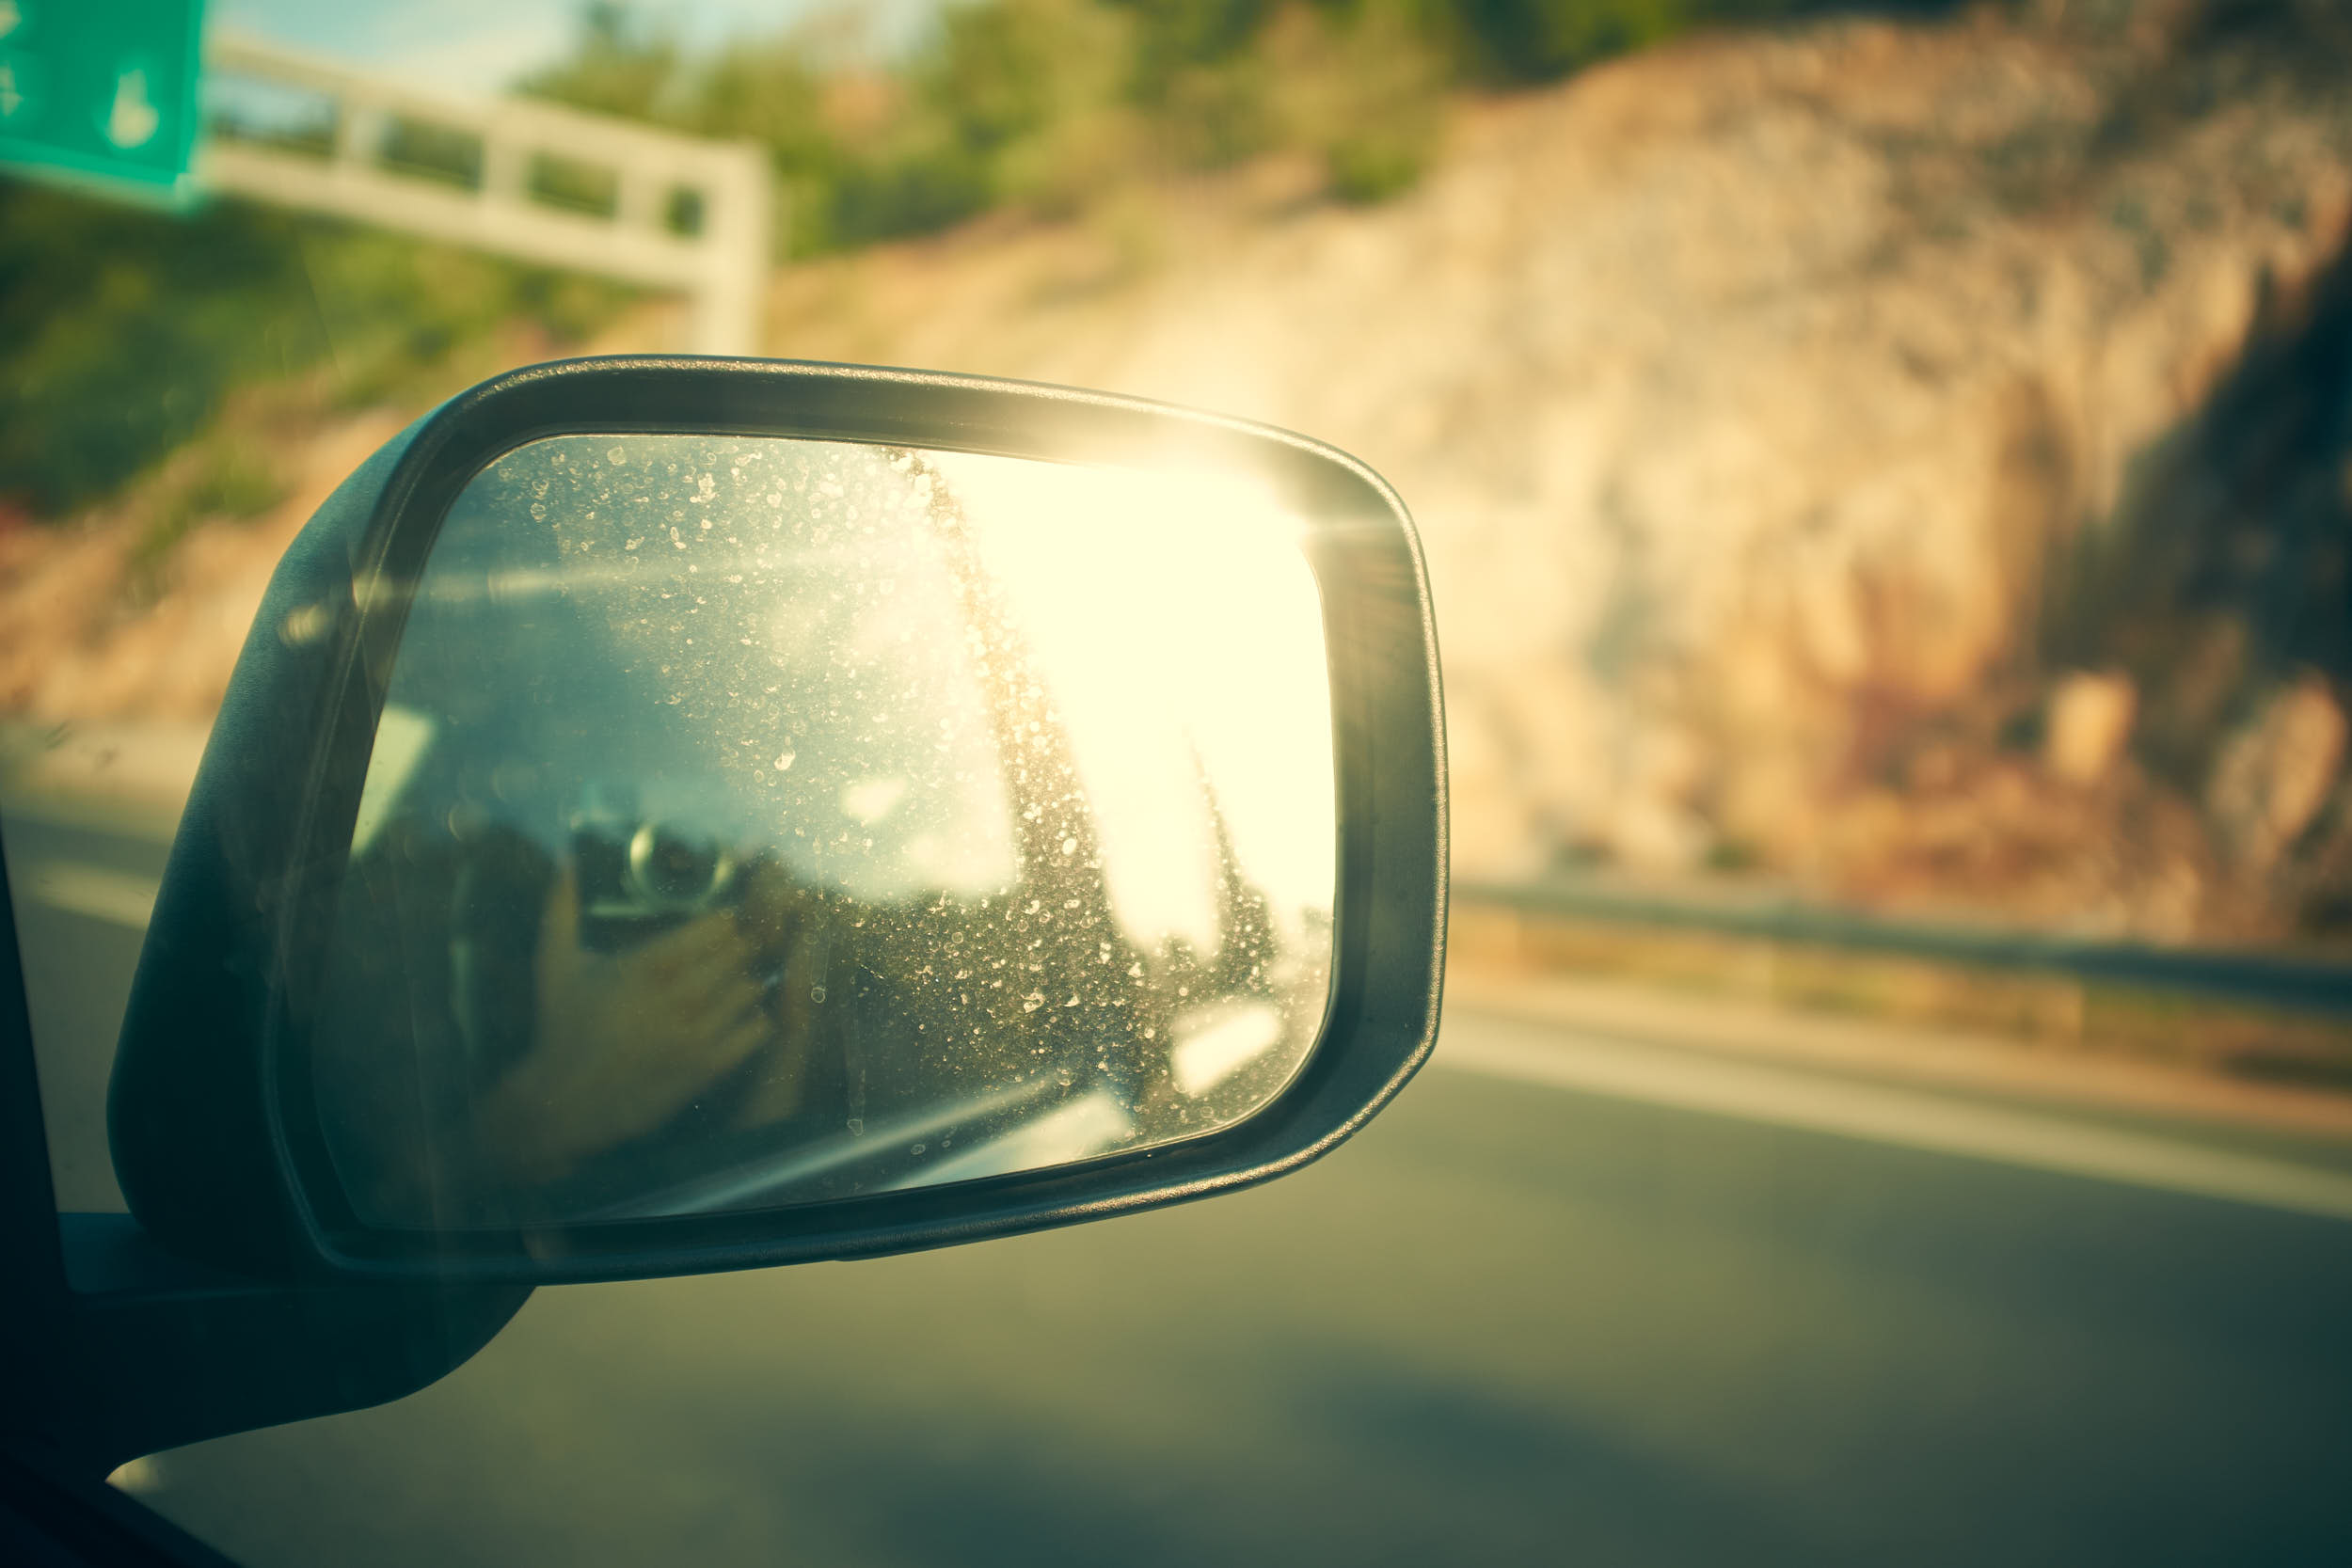 Travel photography on the road. Rearview mirror reflecting sun flare with blurry highway in the background.